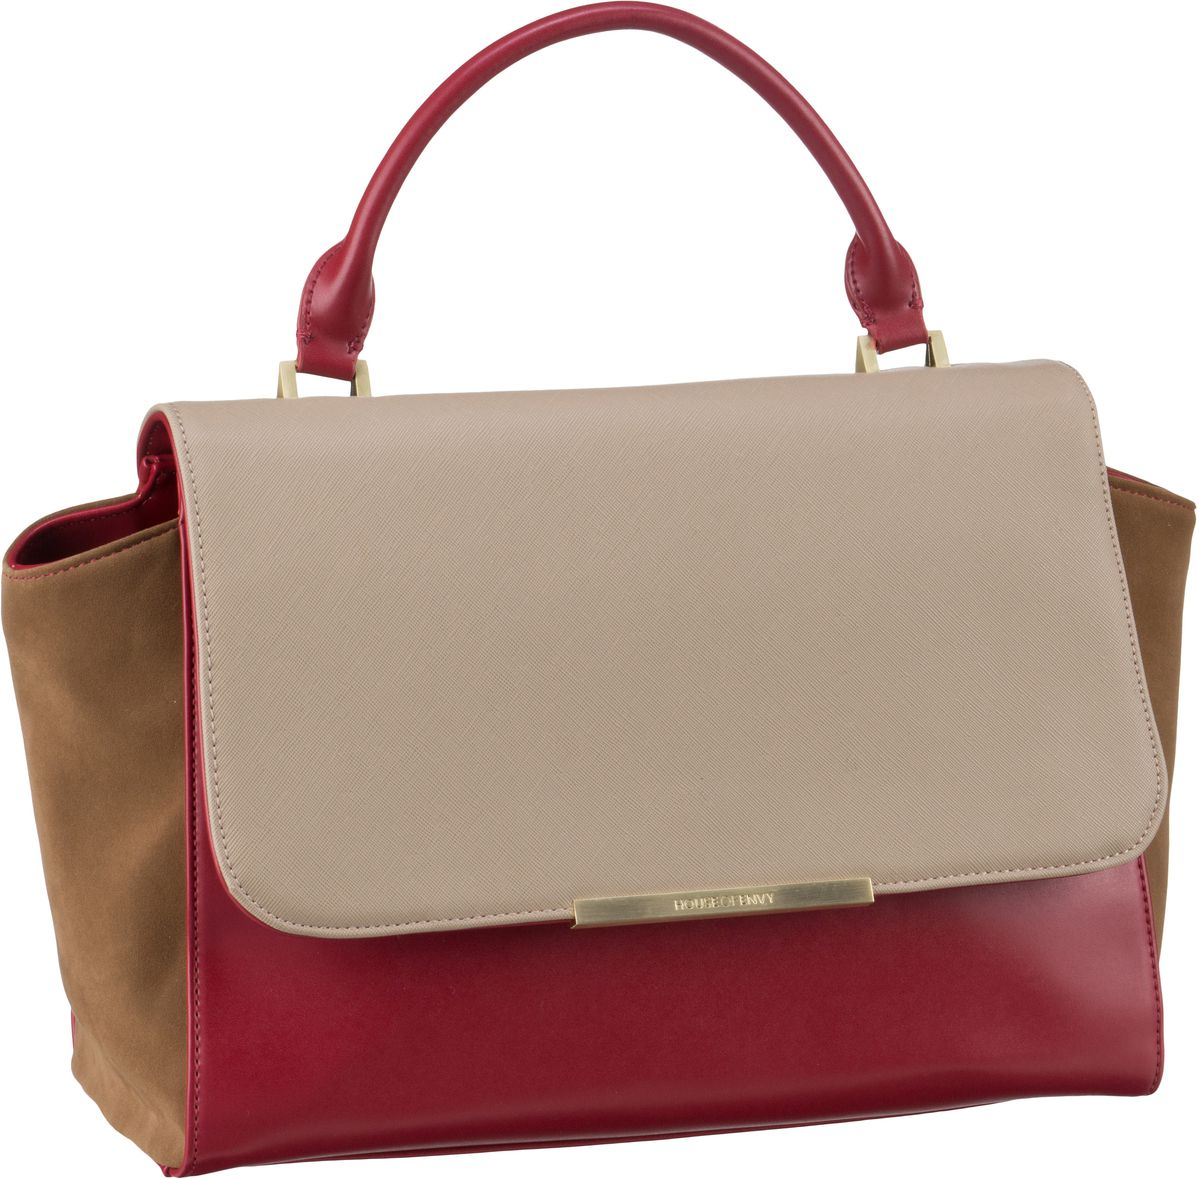 House of Envy Luxurious Beige Combi - Handtasche